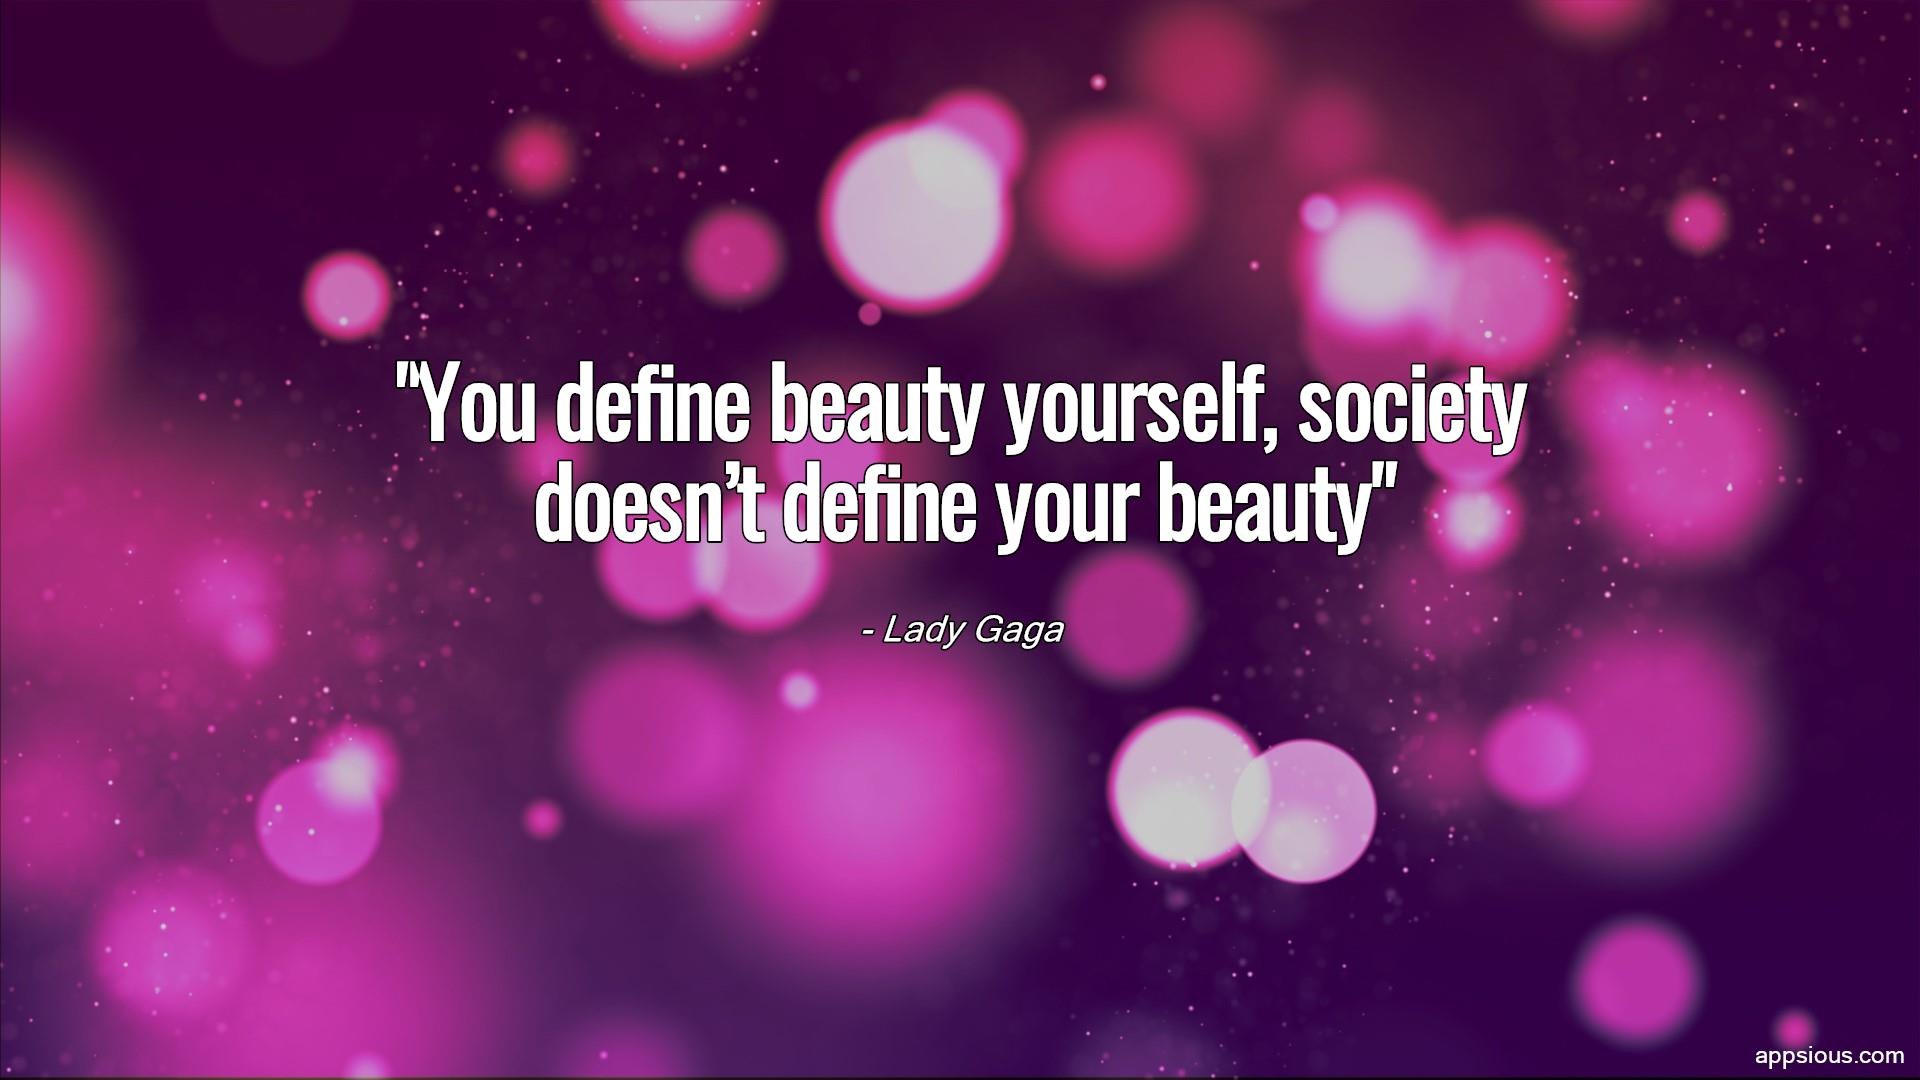 You define beauty yourself, society doesn't define your beauty